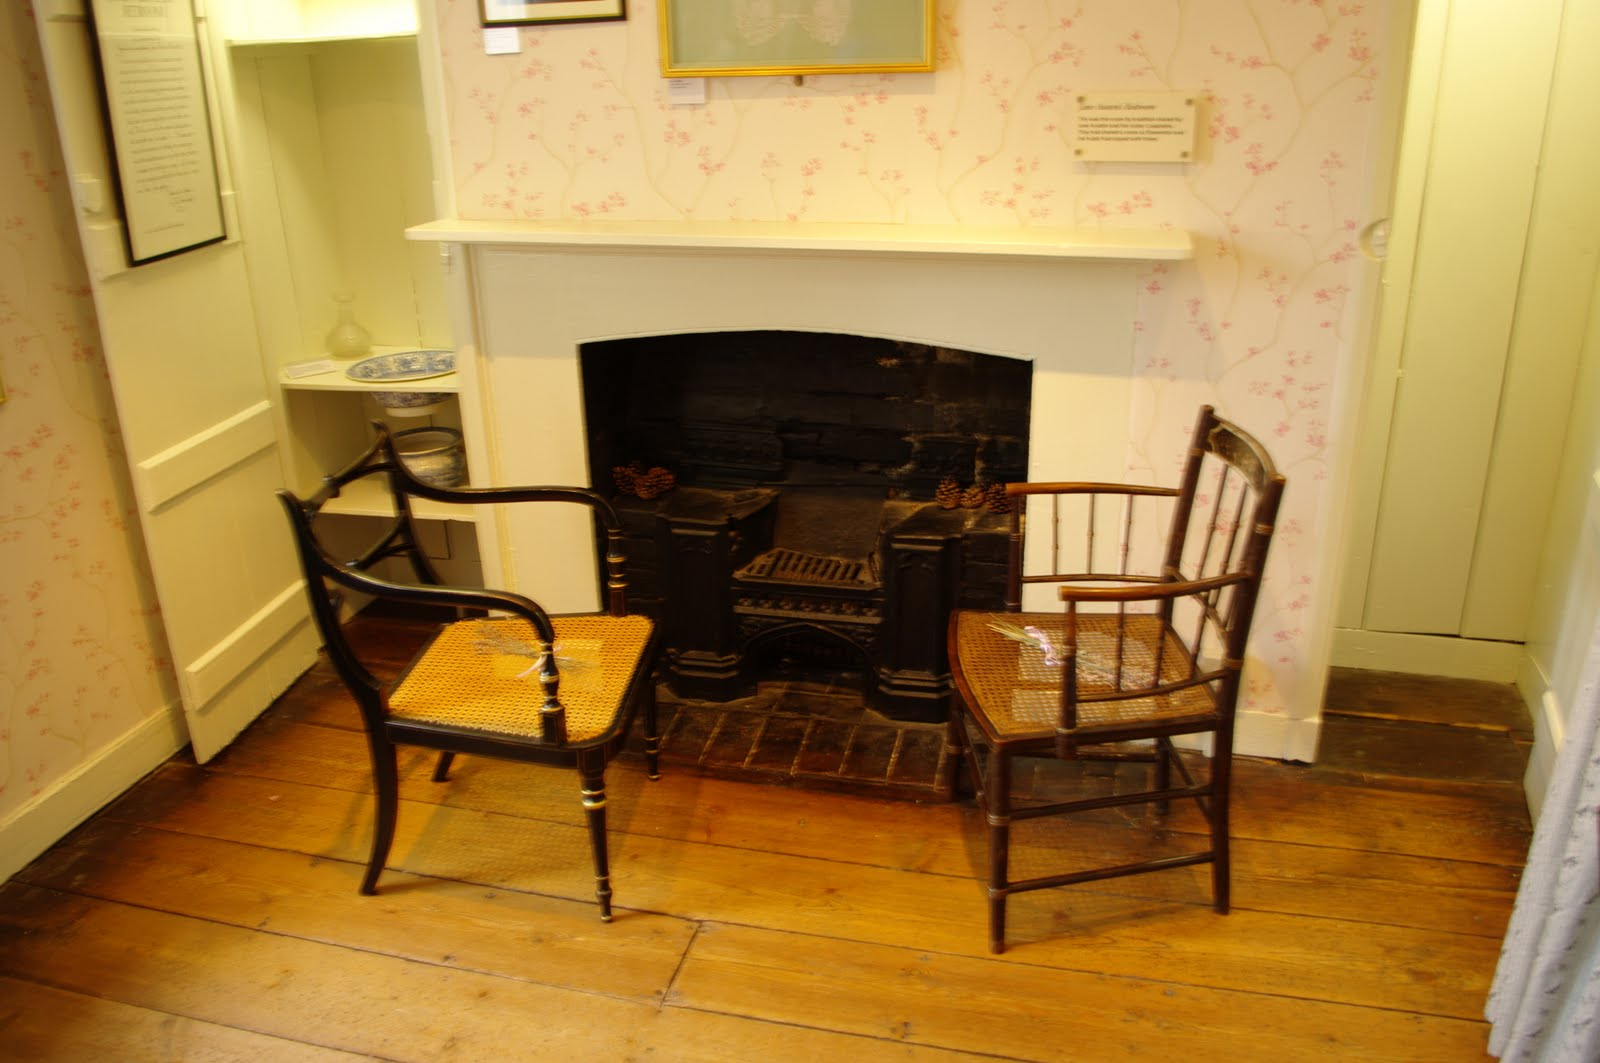 Fireplace in Jane's and Cassandra's shared bedroom. Chawton Cottage Image@Tony Grant